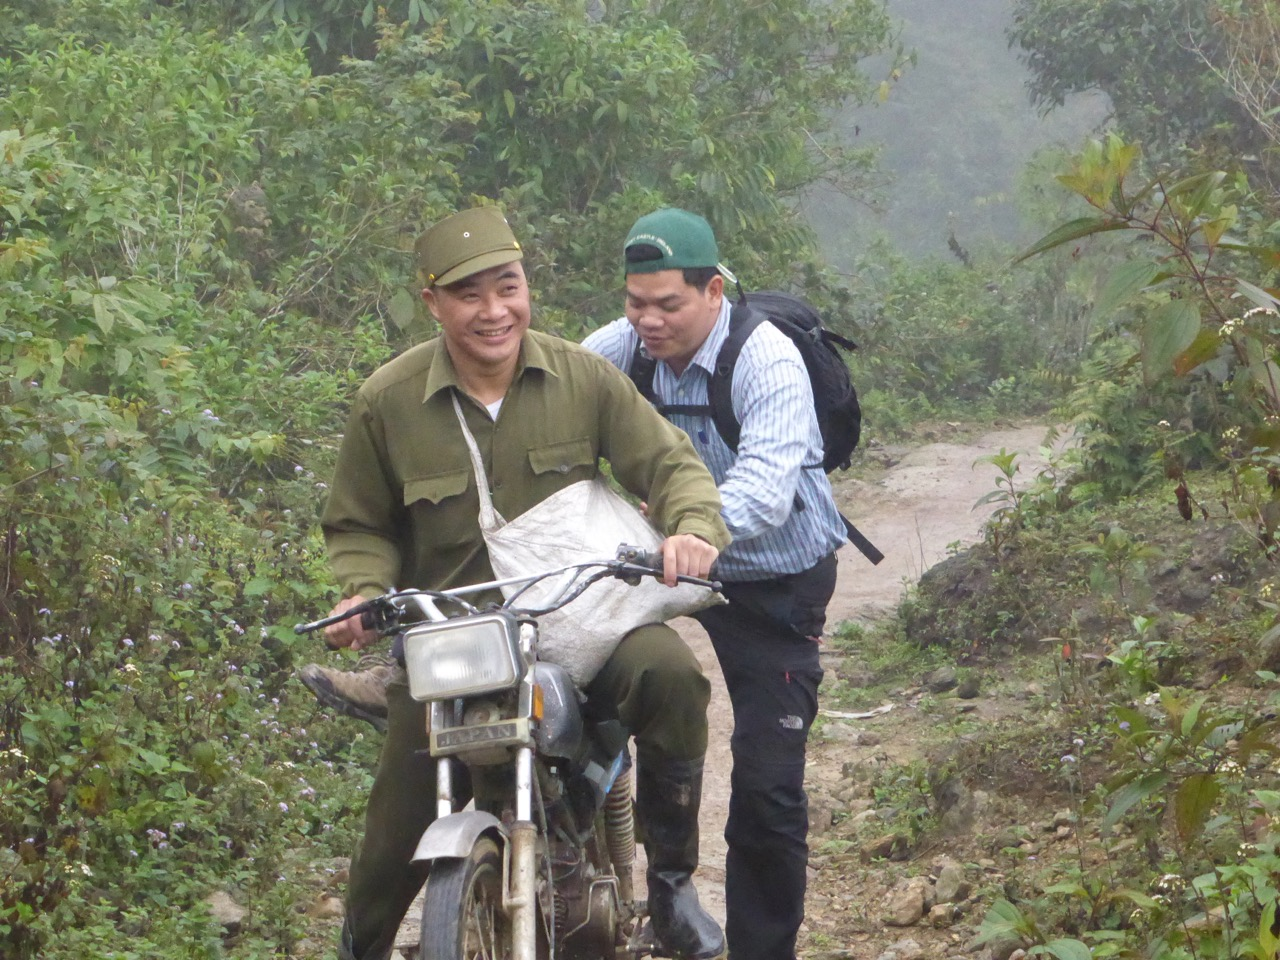 Quang dismounting from a motorcycle